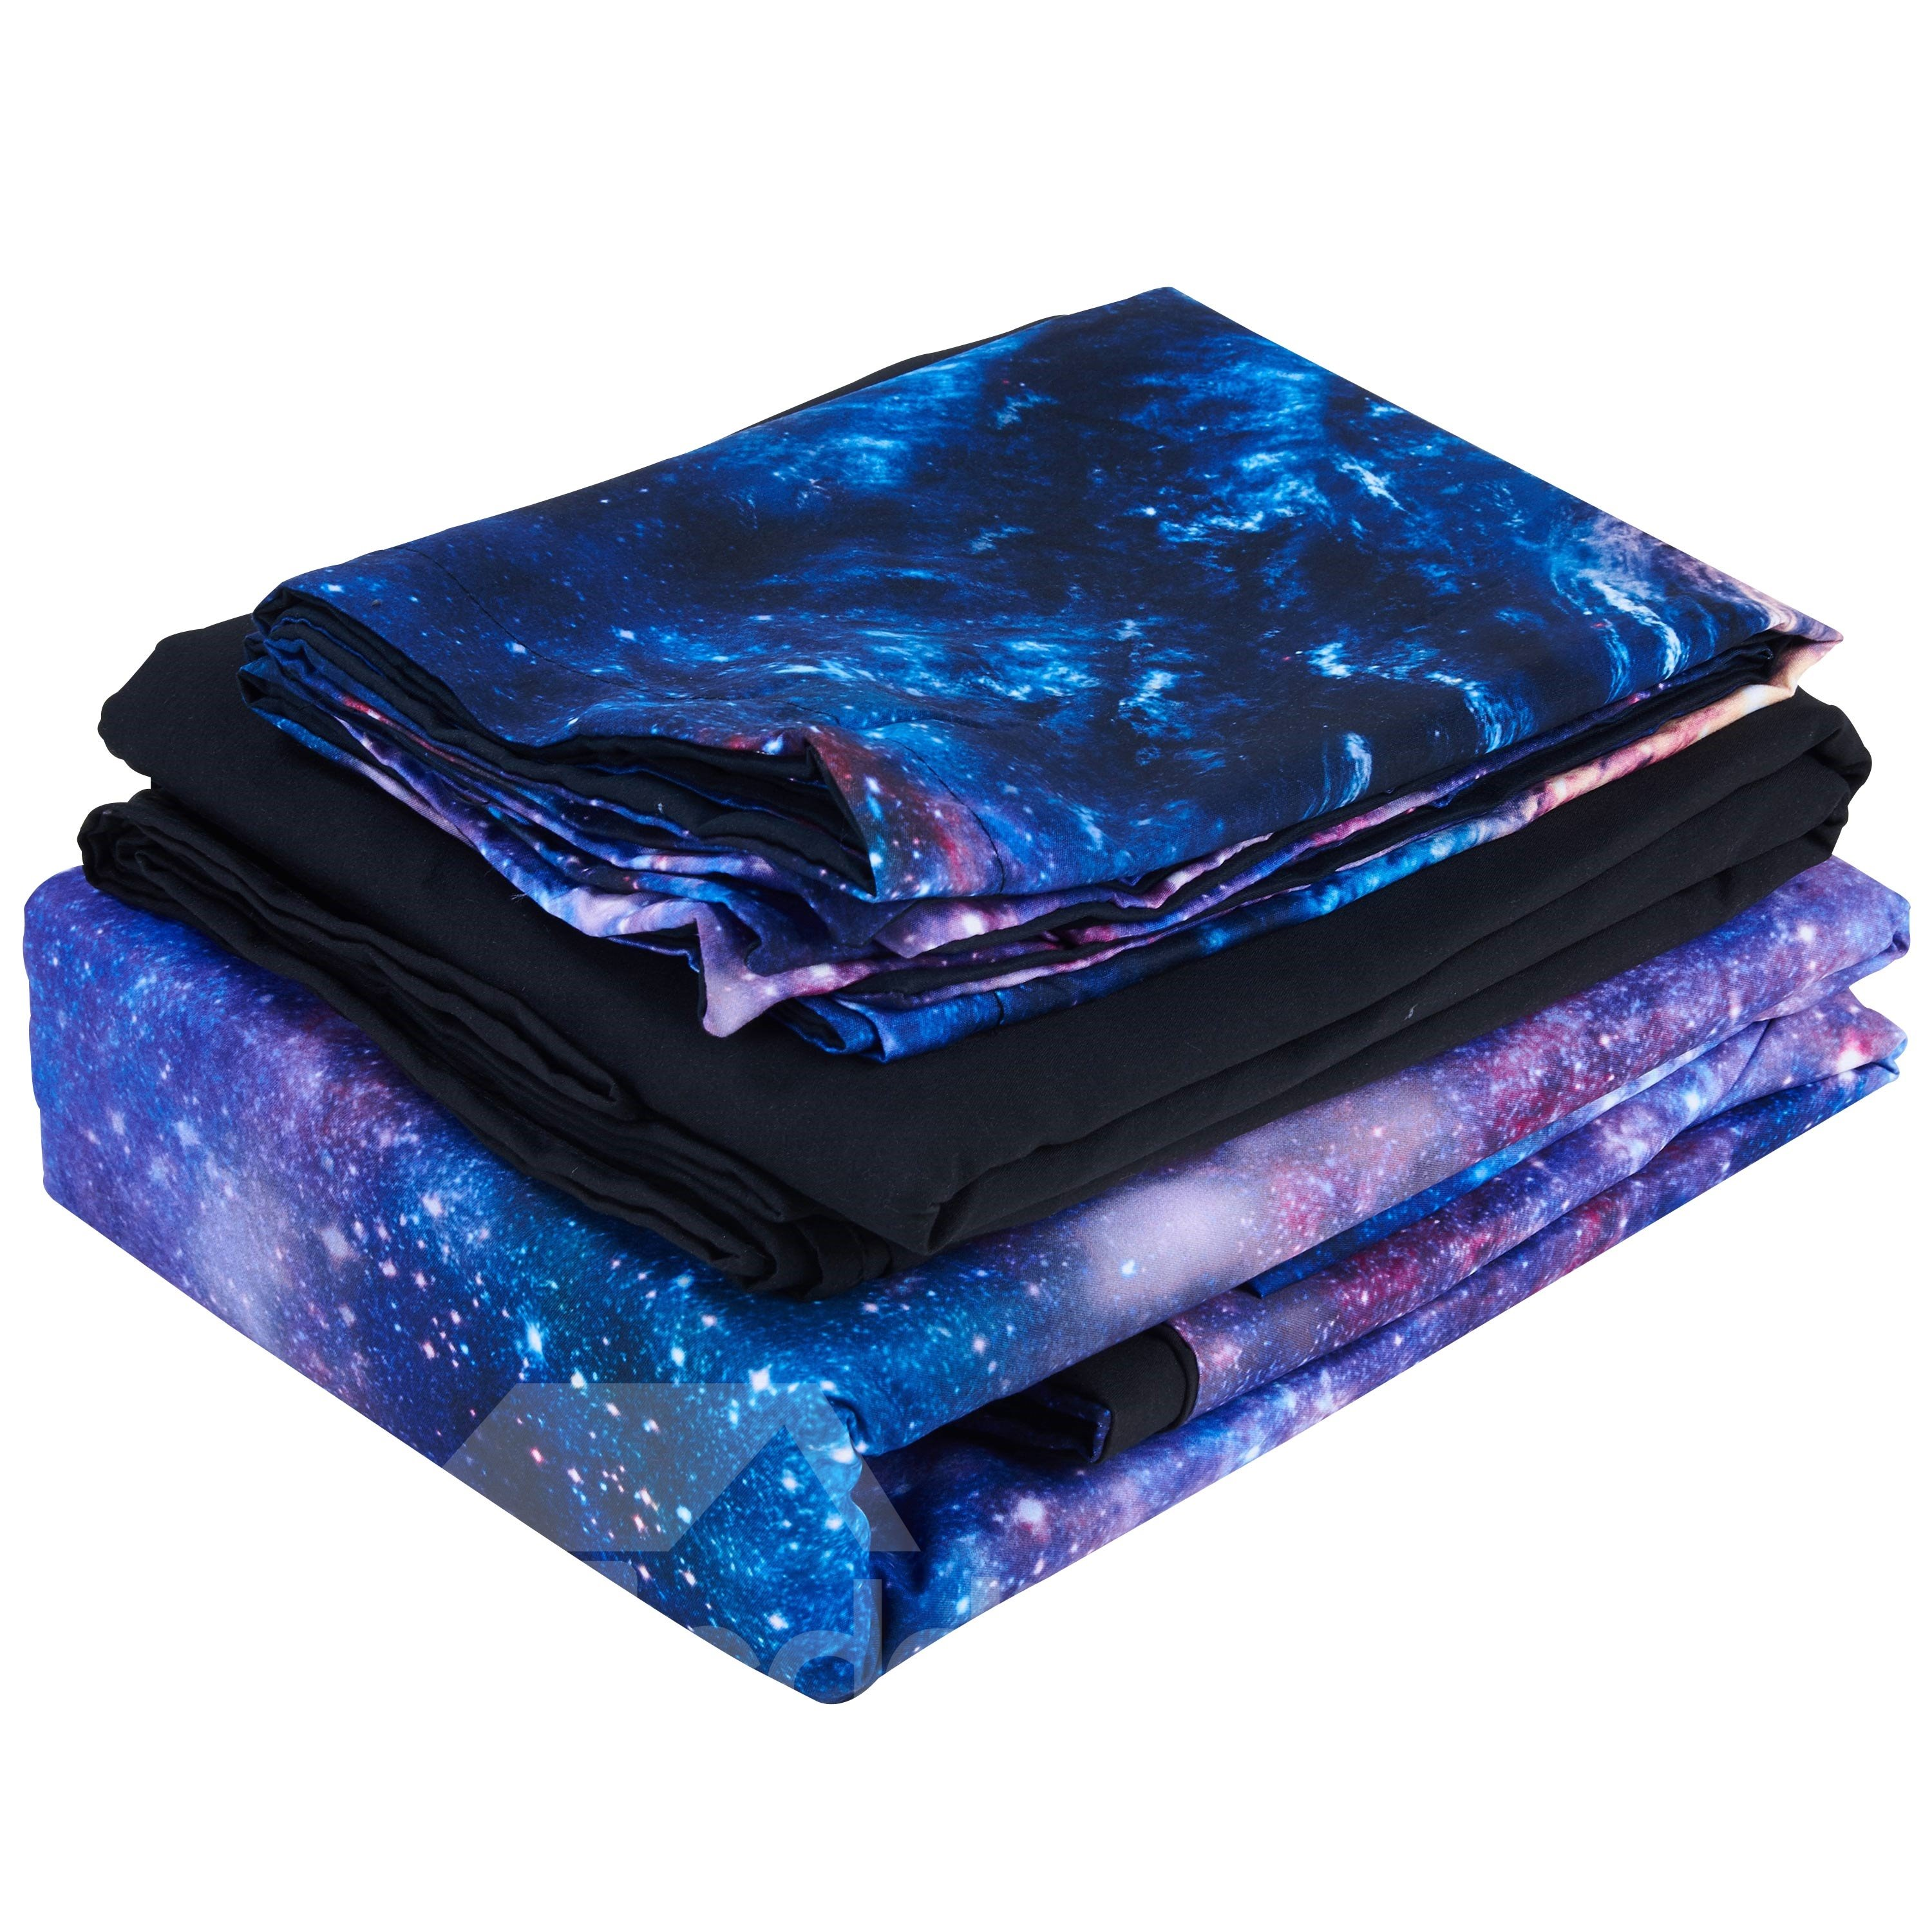 Whirlpool Galaxy Printed Cotton 3D 4-Piece Bedding Sets/Duvet Covers